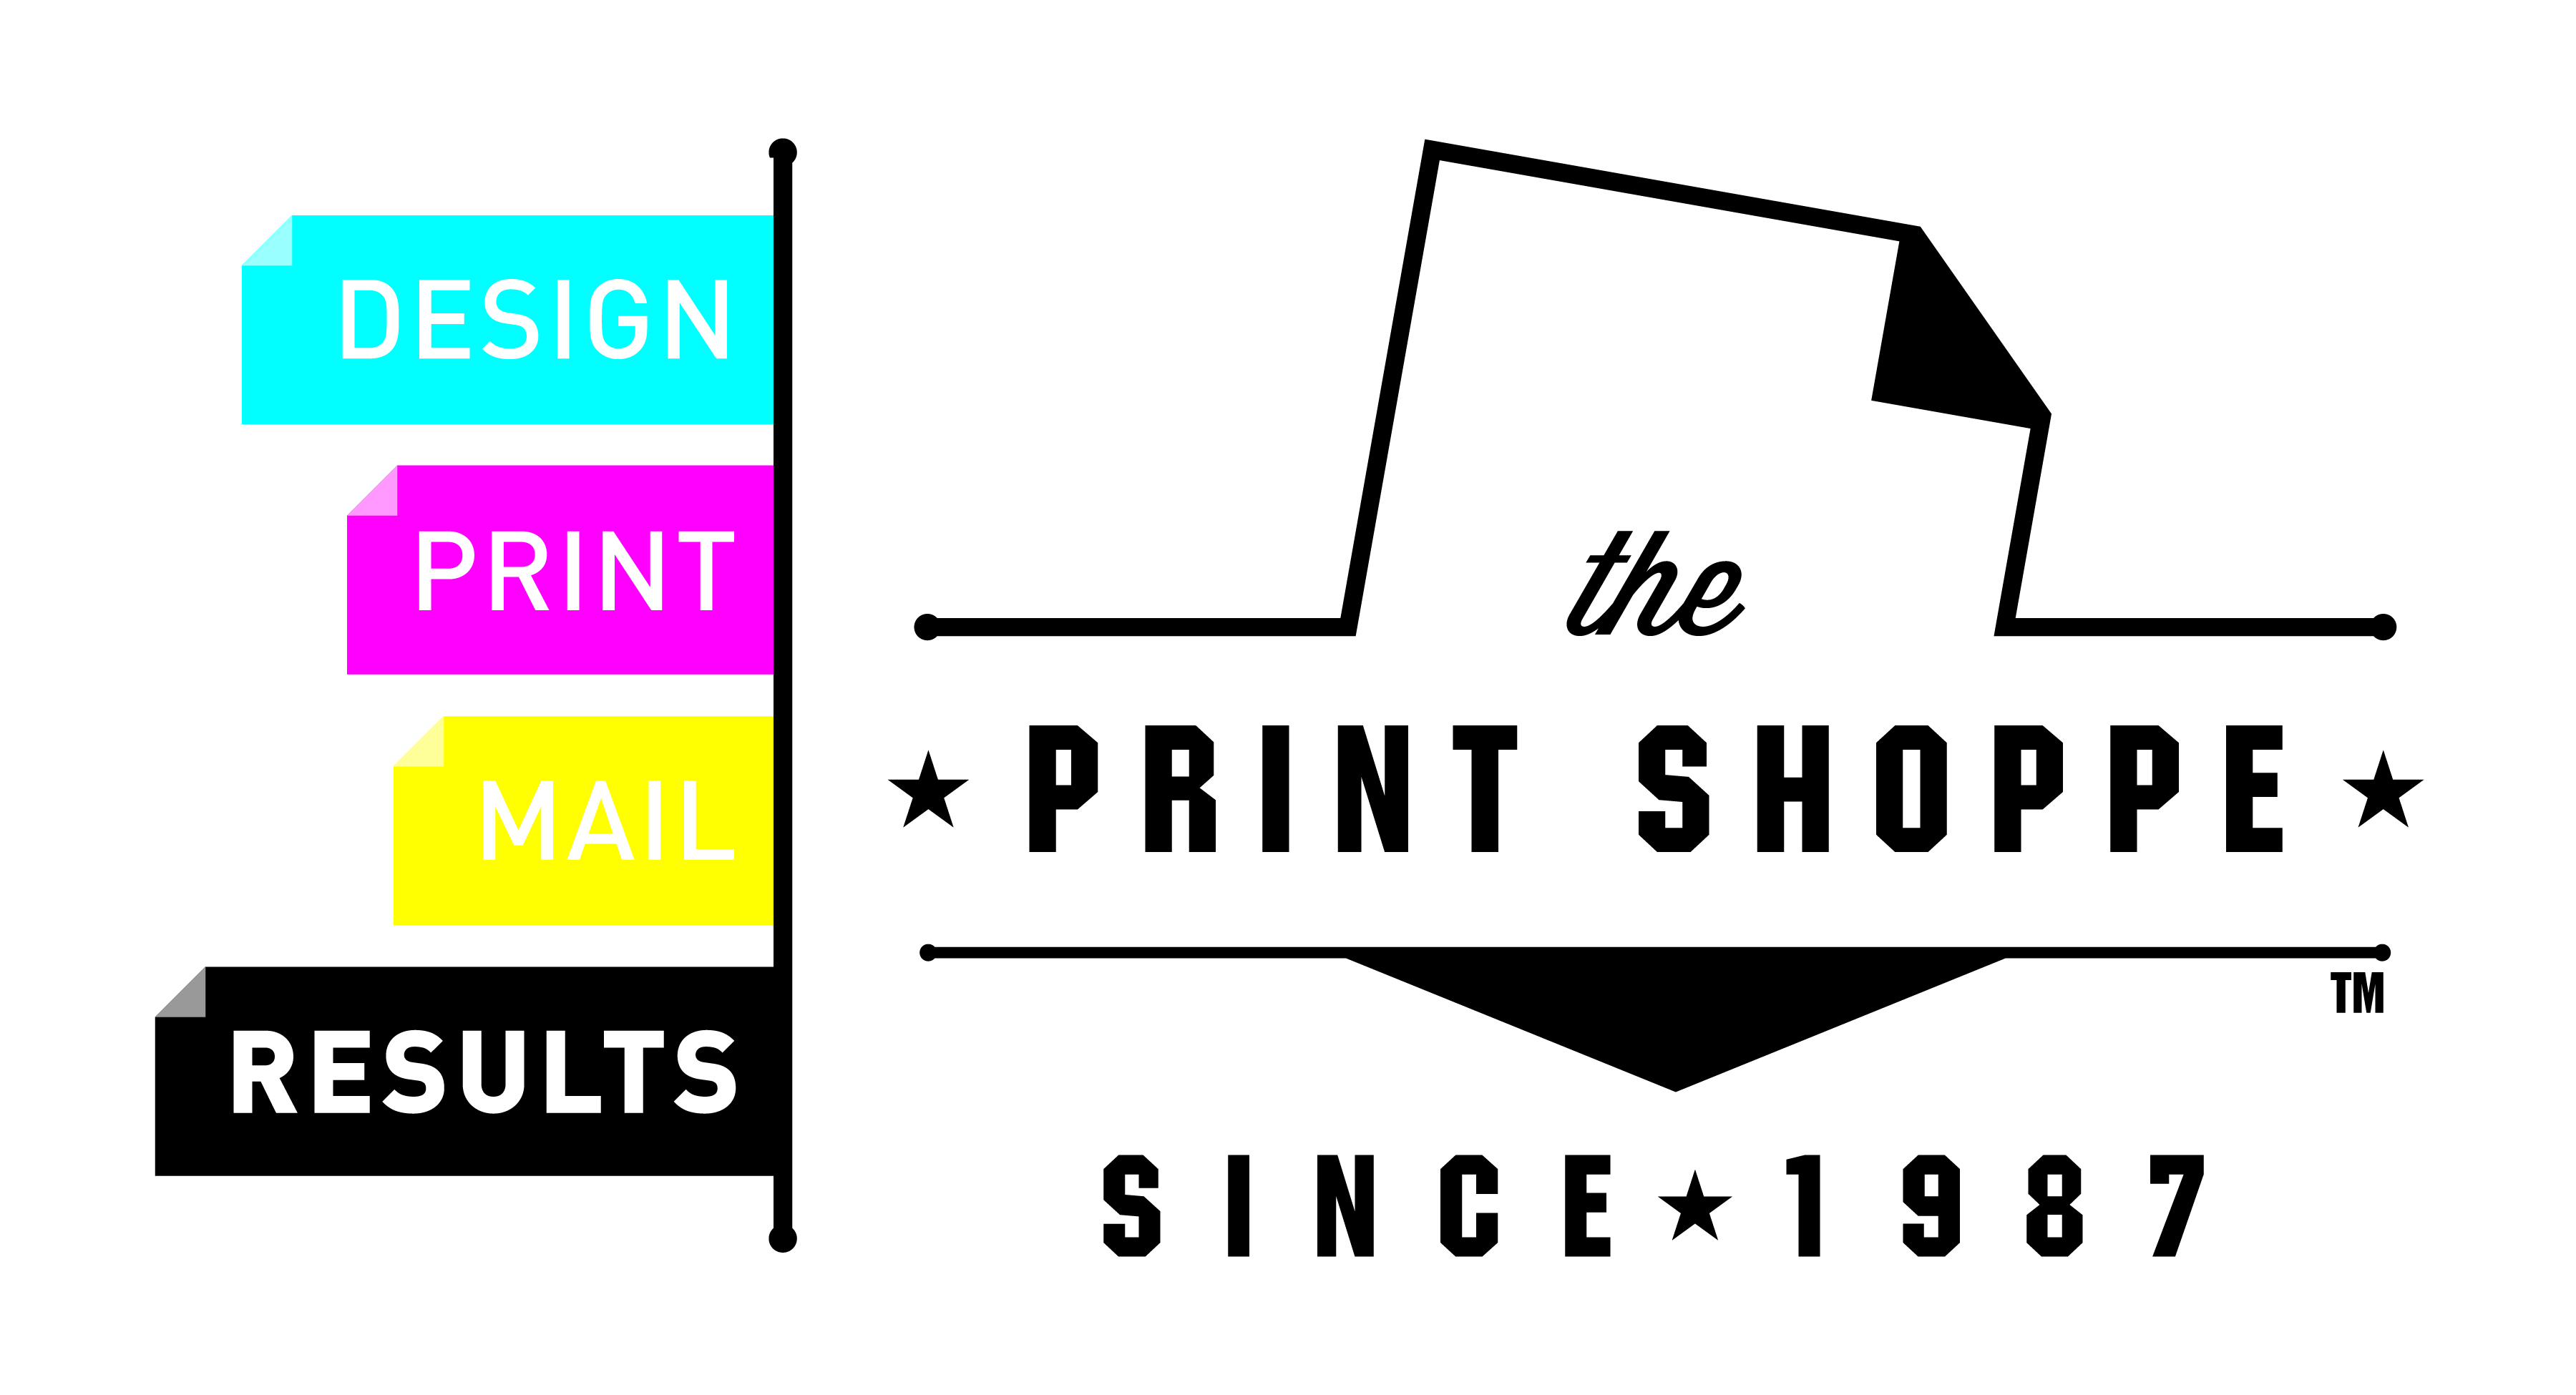 Color printing austin -  This Campaign Is Supported By A Fantastic Local Austin Printing Business Called The Print Shoppe Check Out Their Top Of The Line Work And Friendly